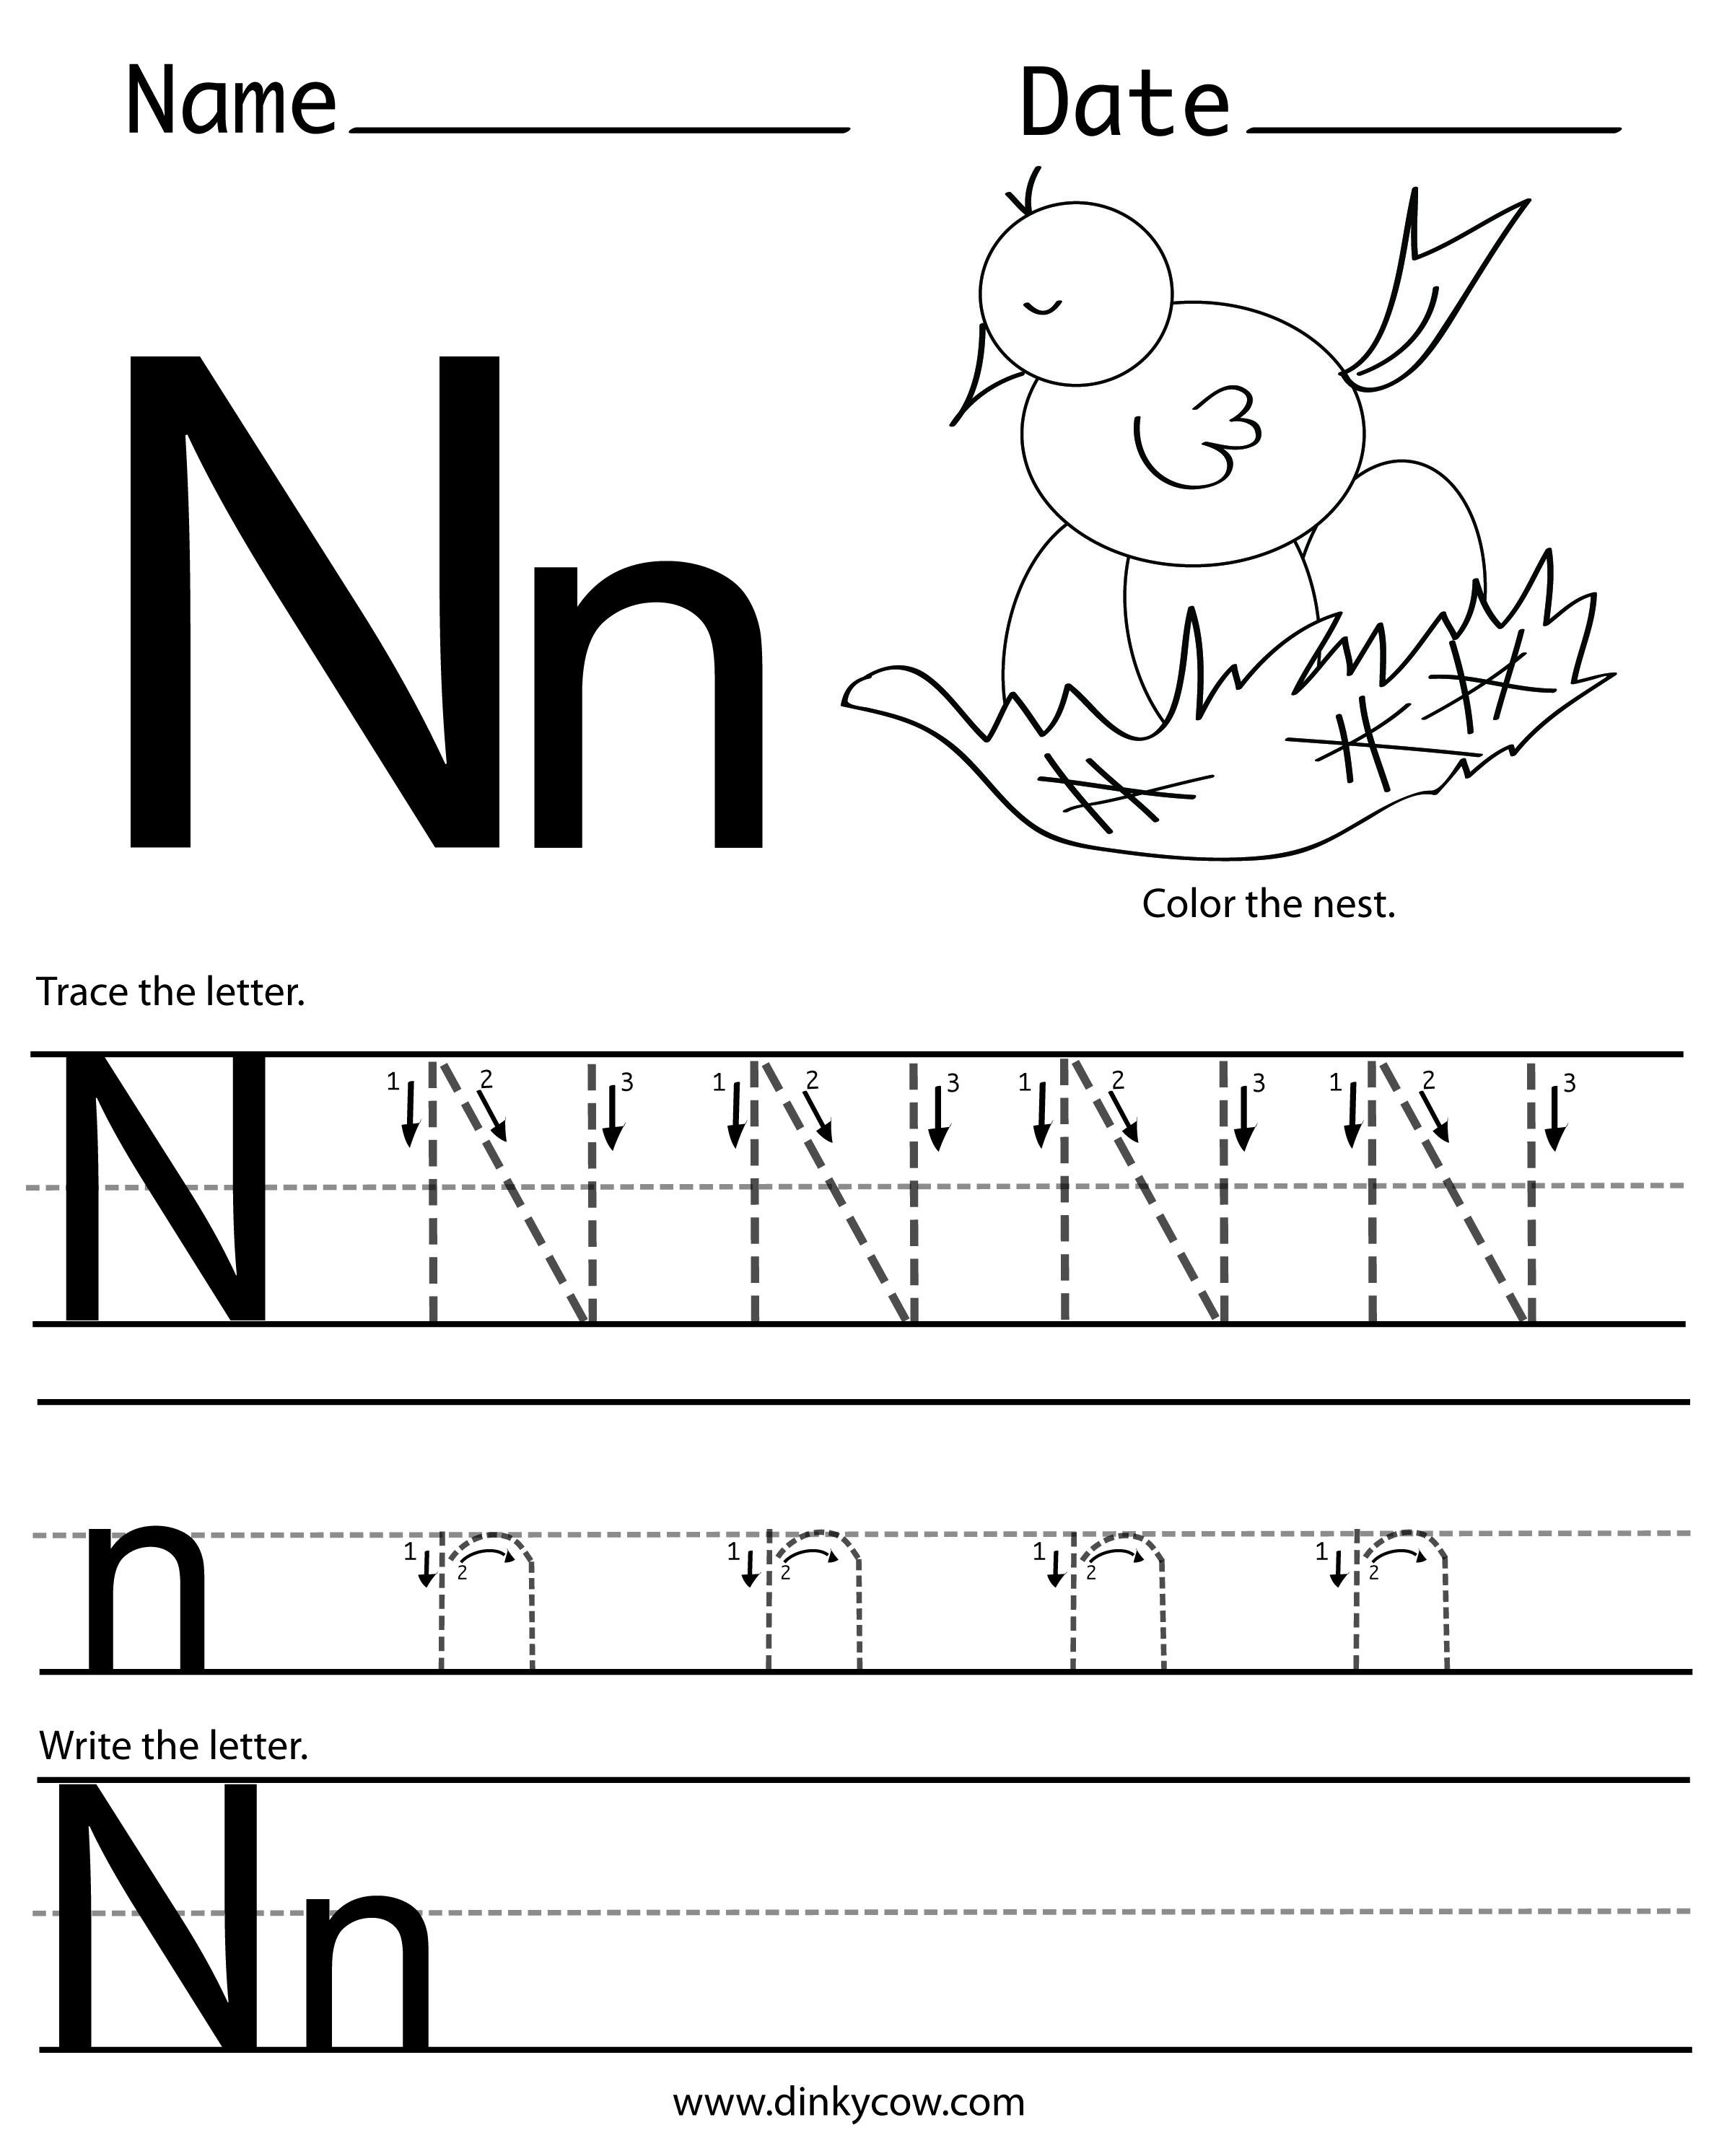 Letter N Preschool Worksheets N Free Handwriting Worksheet Print 2 400—2 988 Pixels